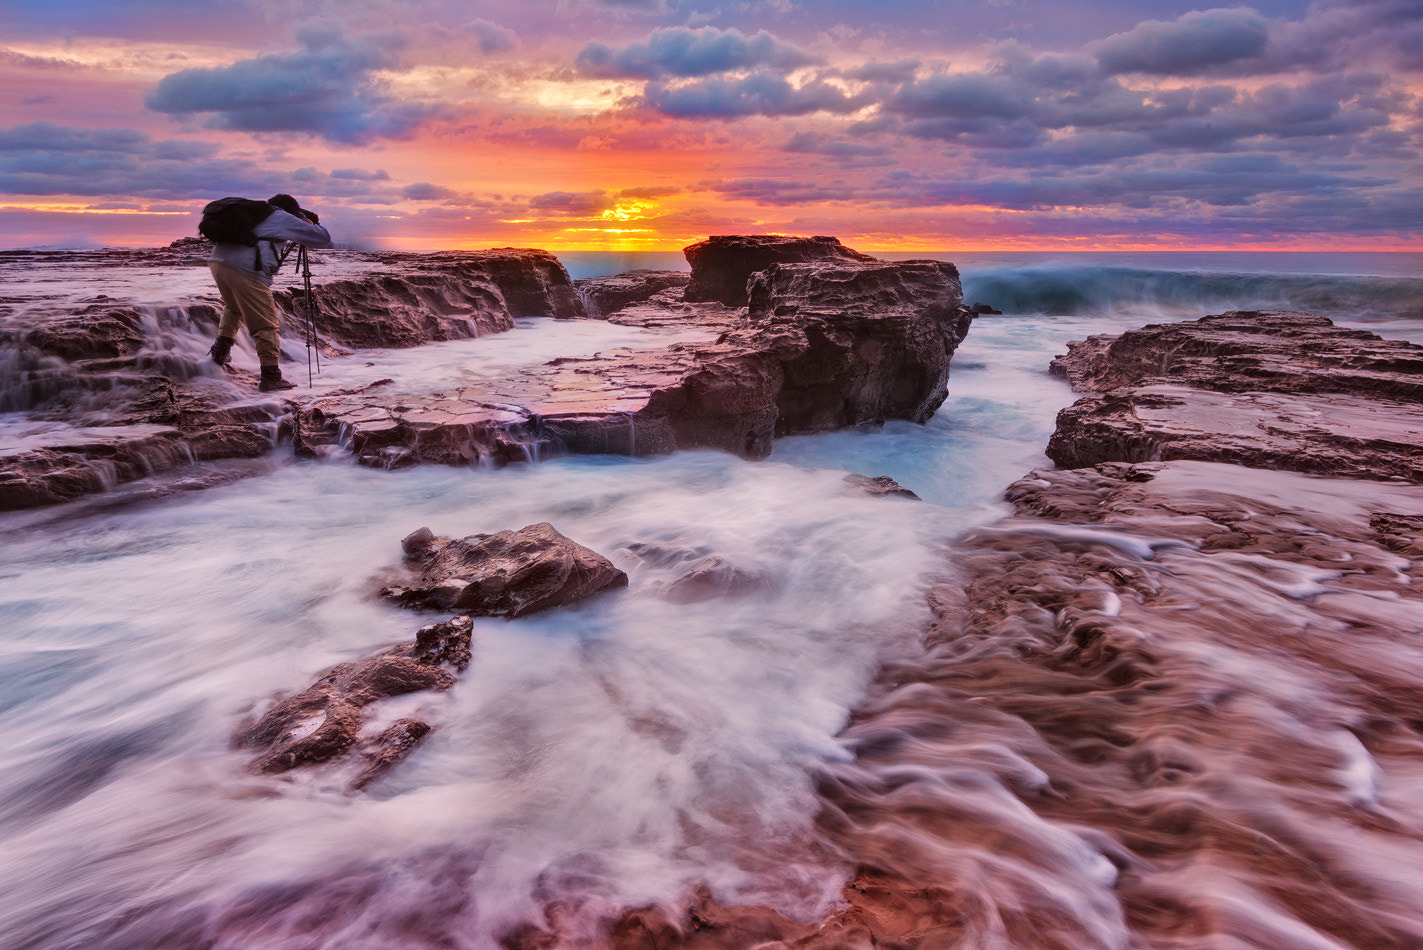 Photograph Seascape Photographer by Wolongshan  on 500px